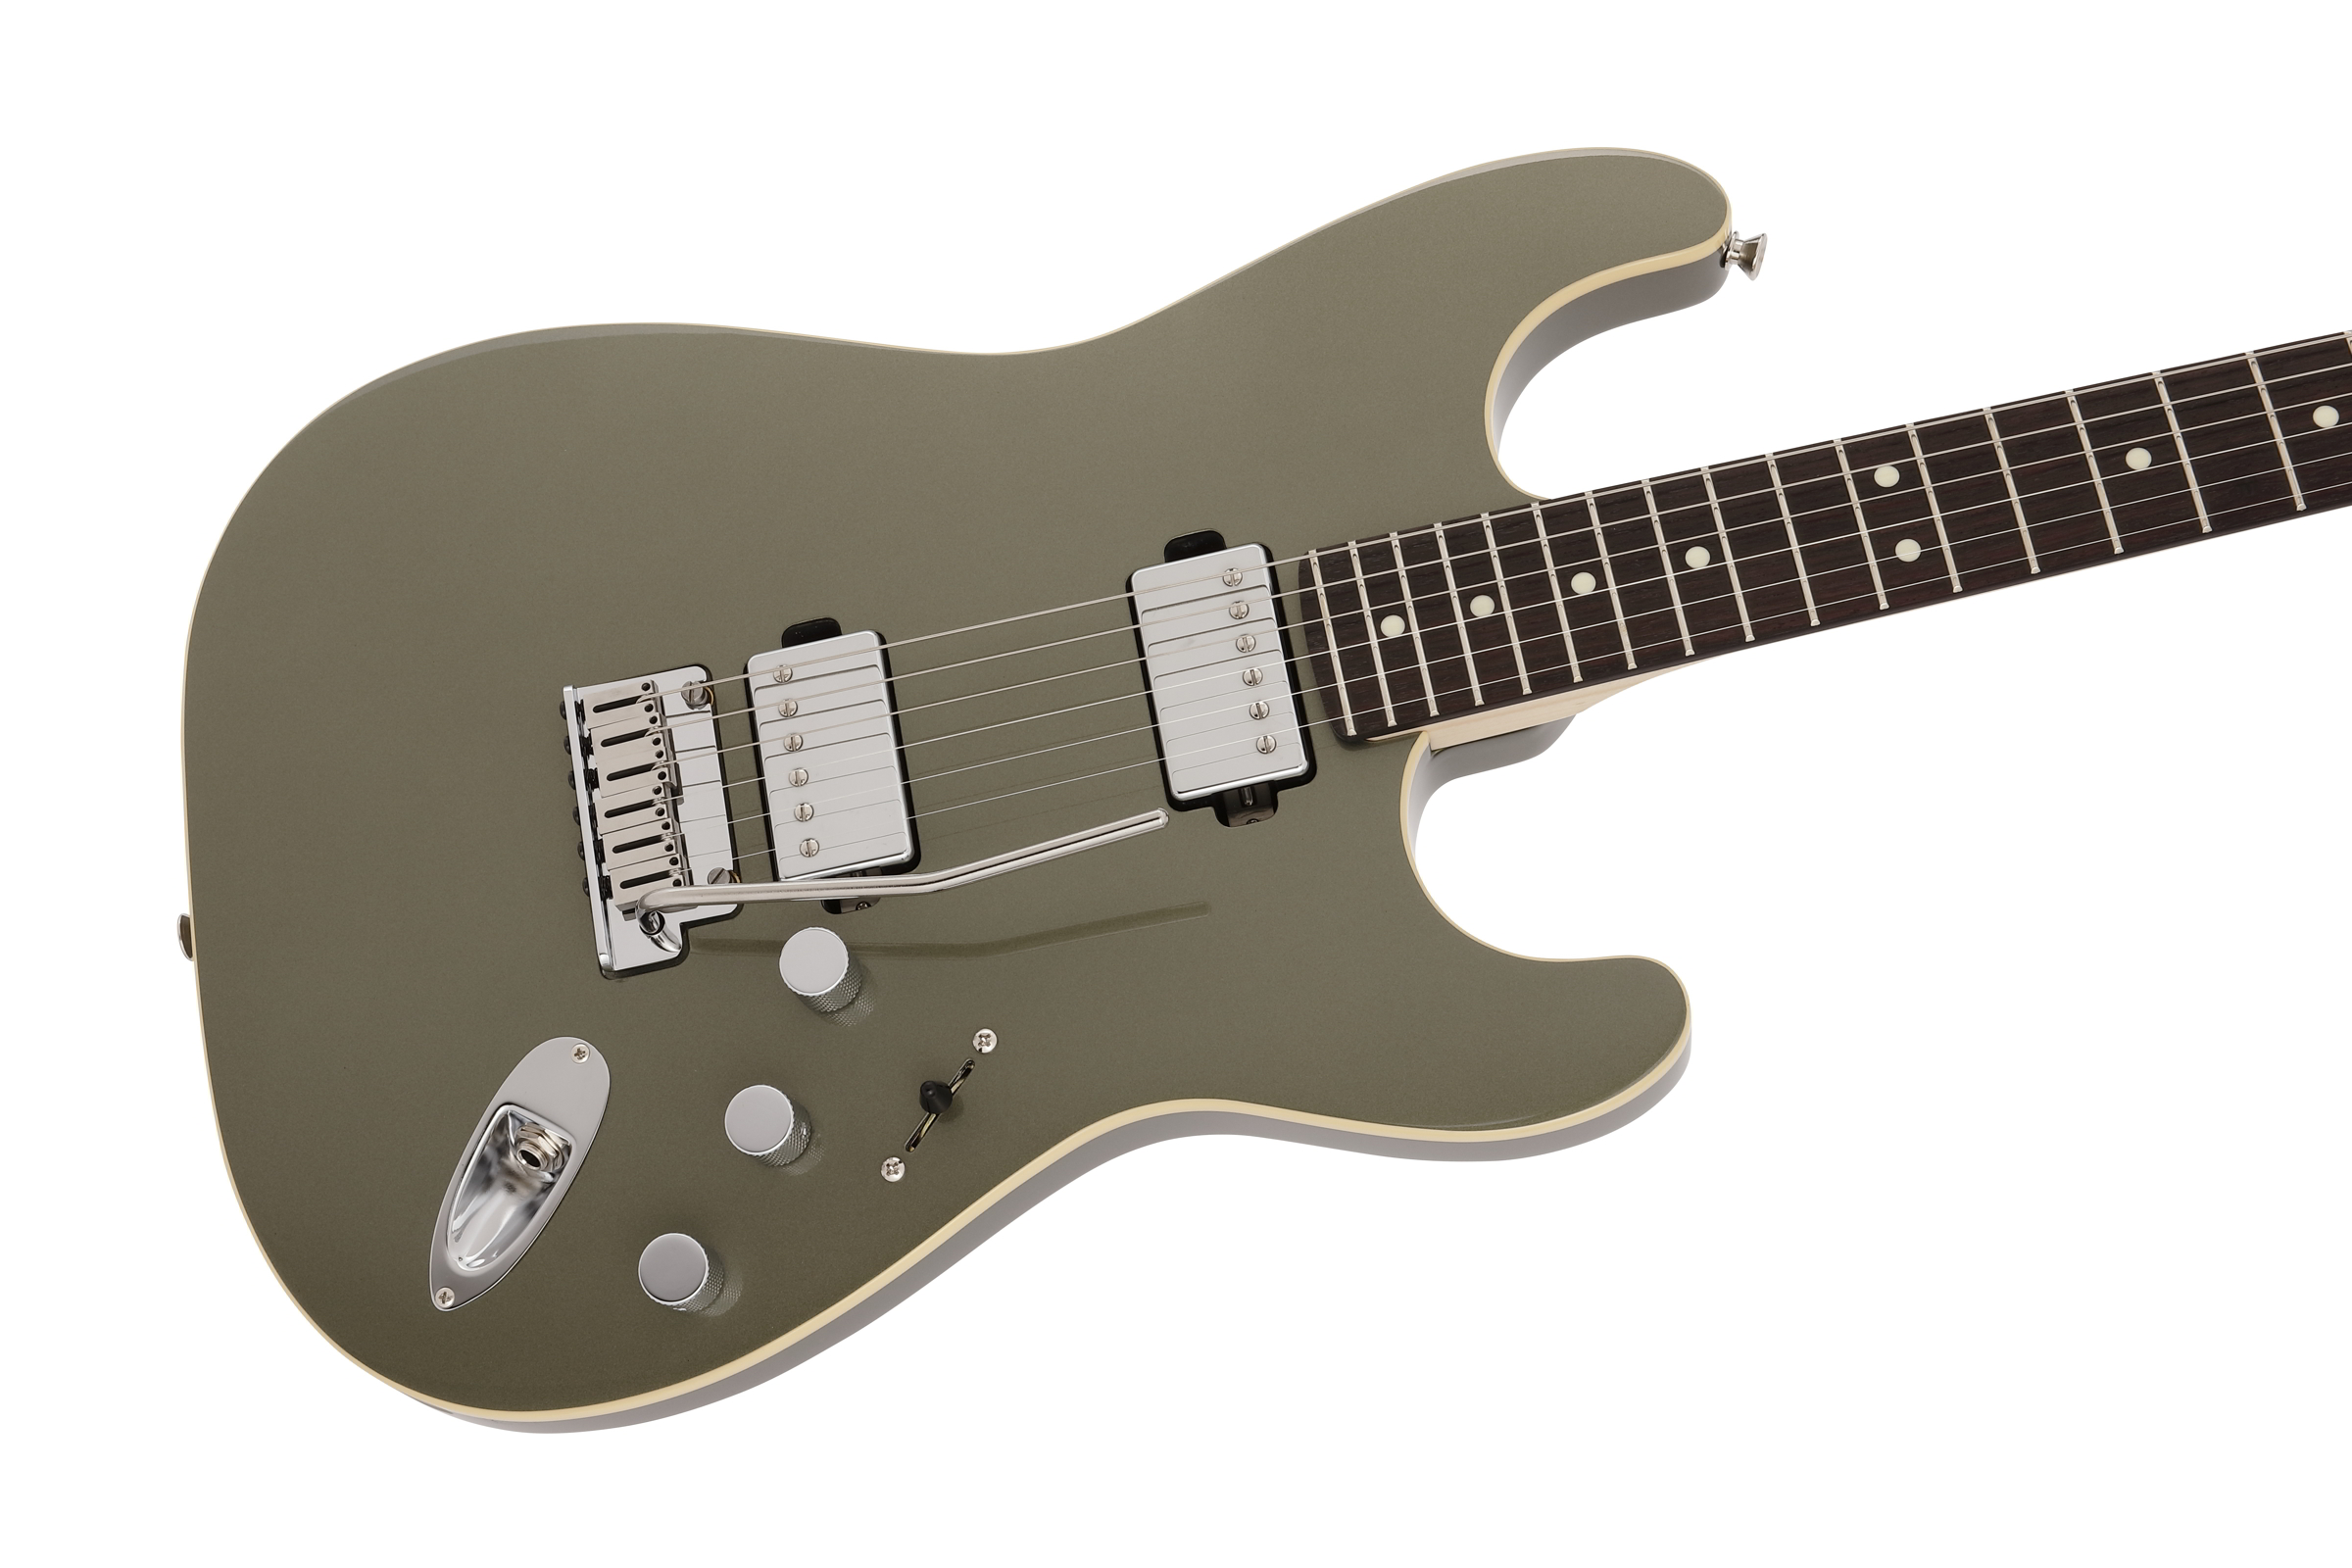 MADE IN JAPAN MODERN STRATOCASTER HH Jasper Olive Metallic追加画像